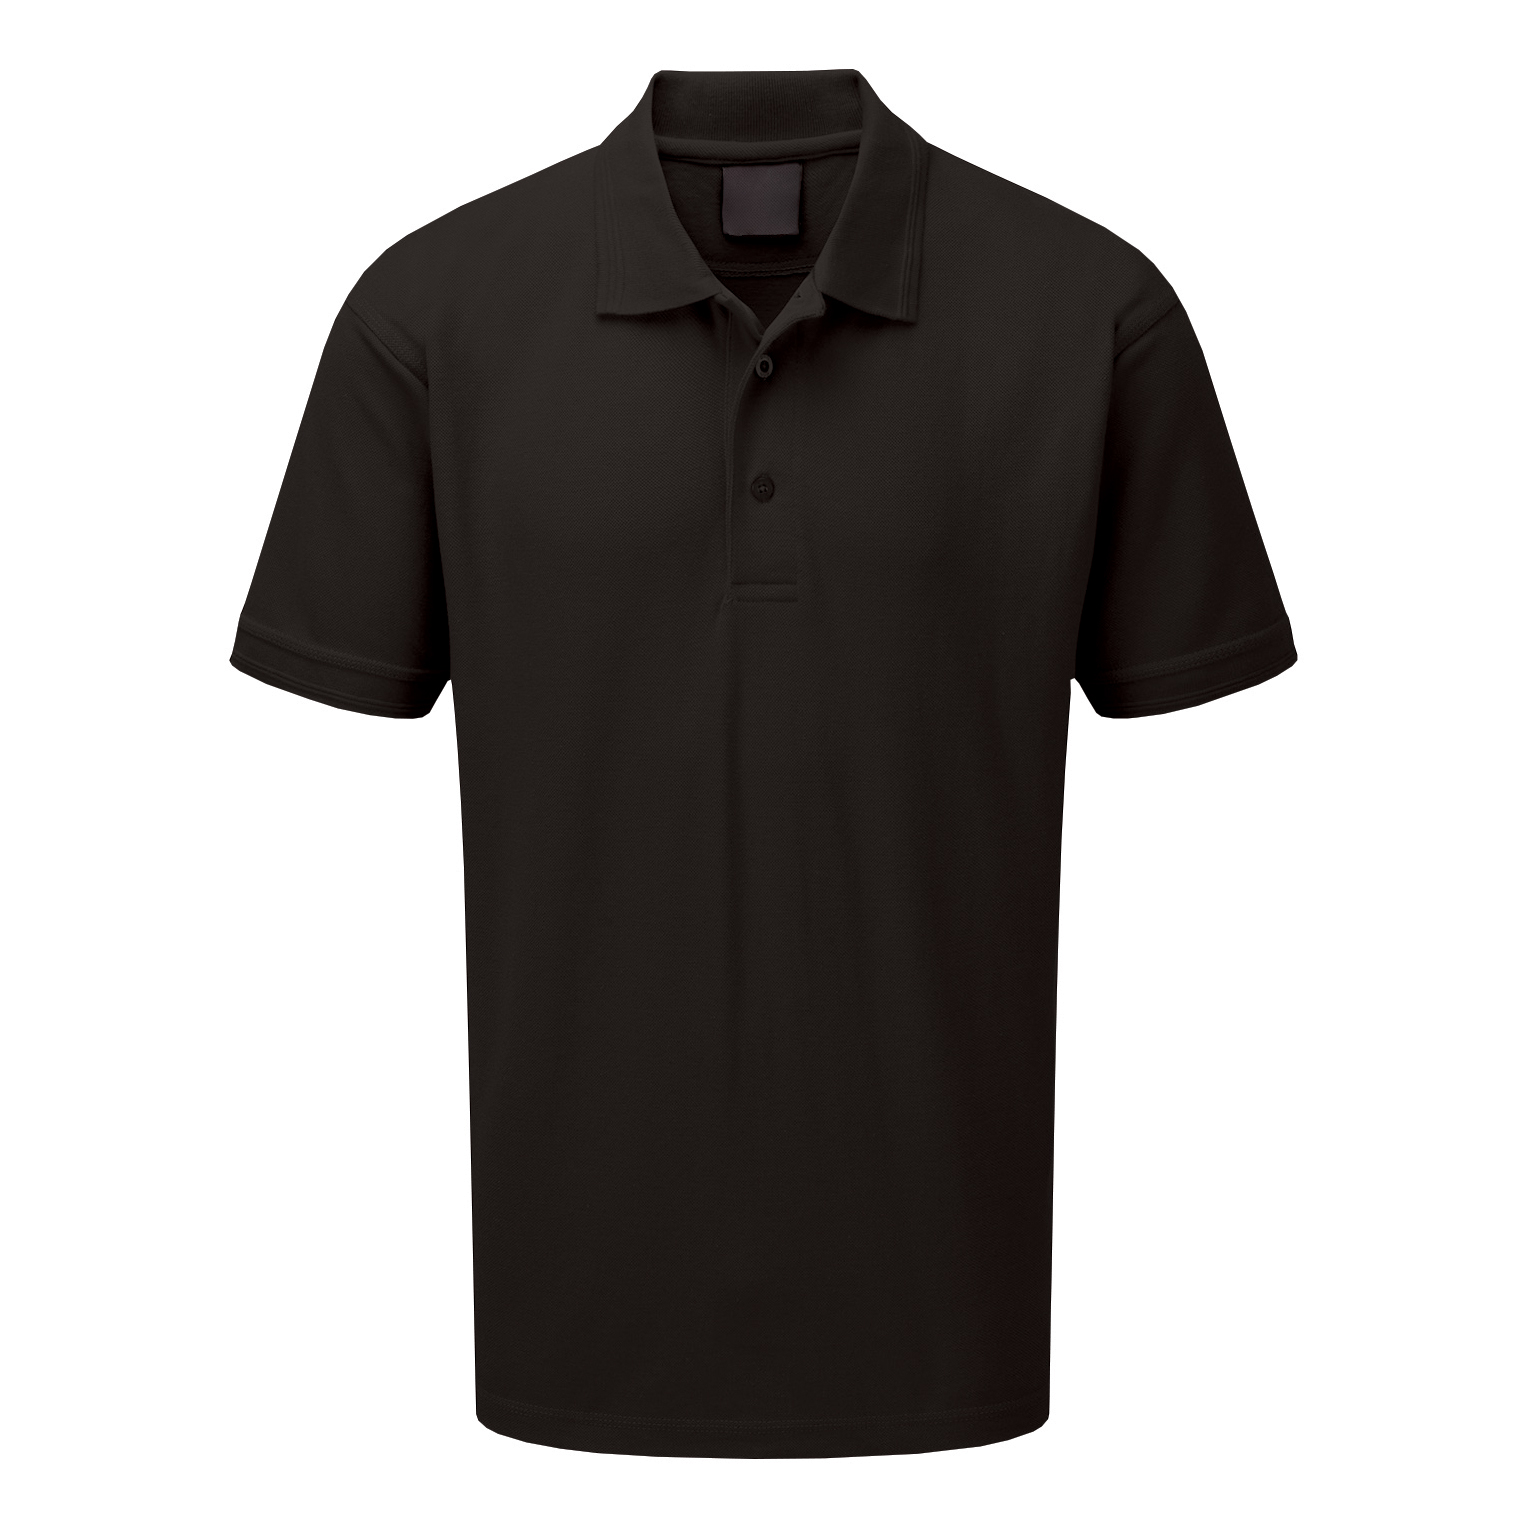 Click Workwear Polo Shirt Polycotton 200gsm Large Black Ref CLPKSBLL 1-3 Days Lead Time